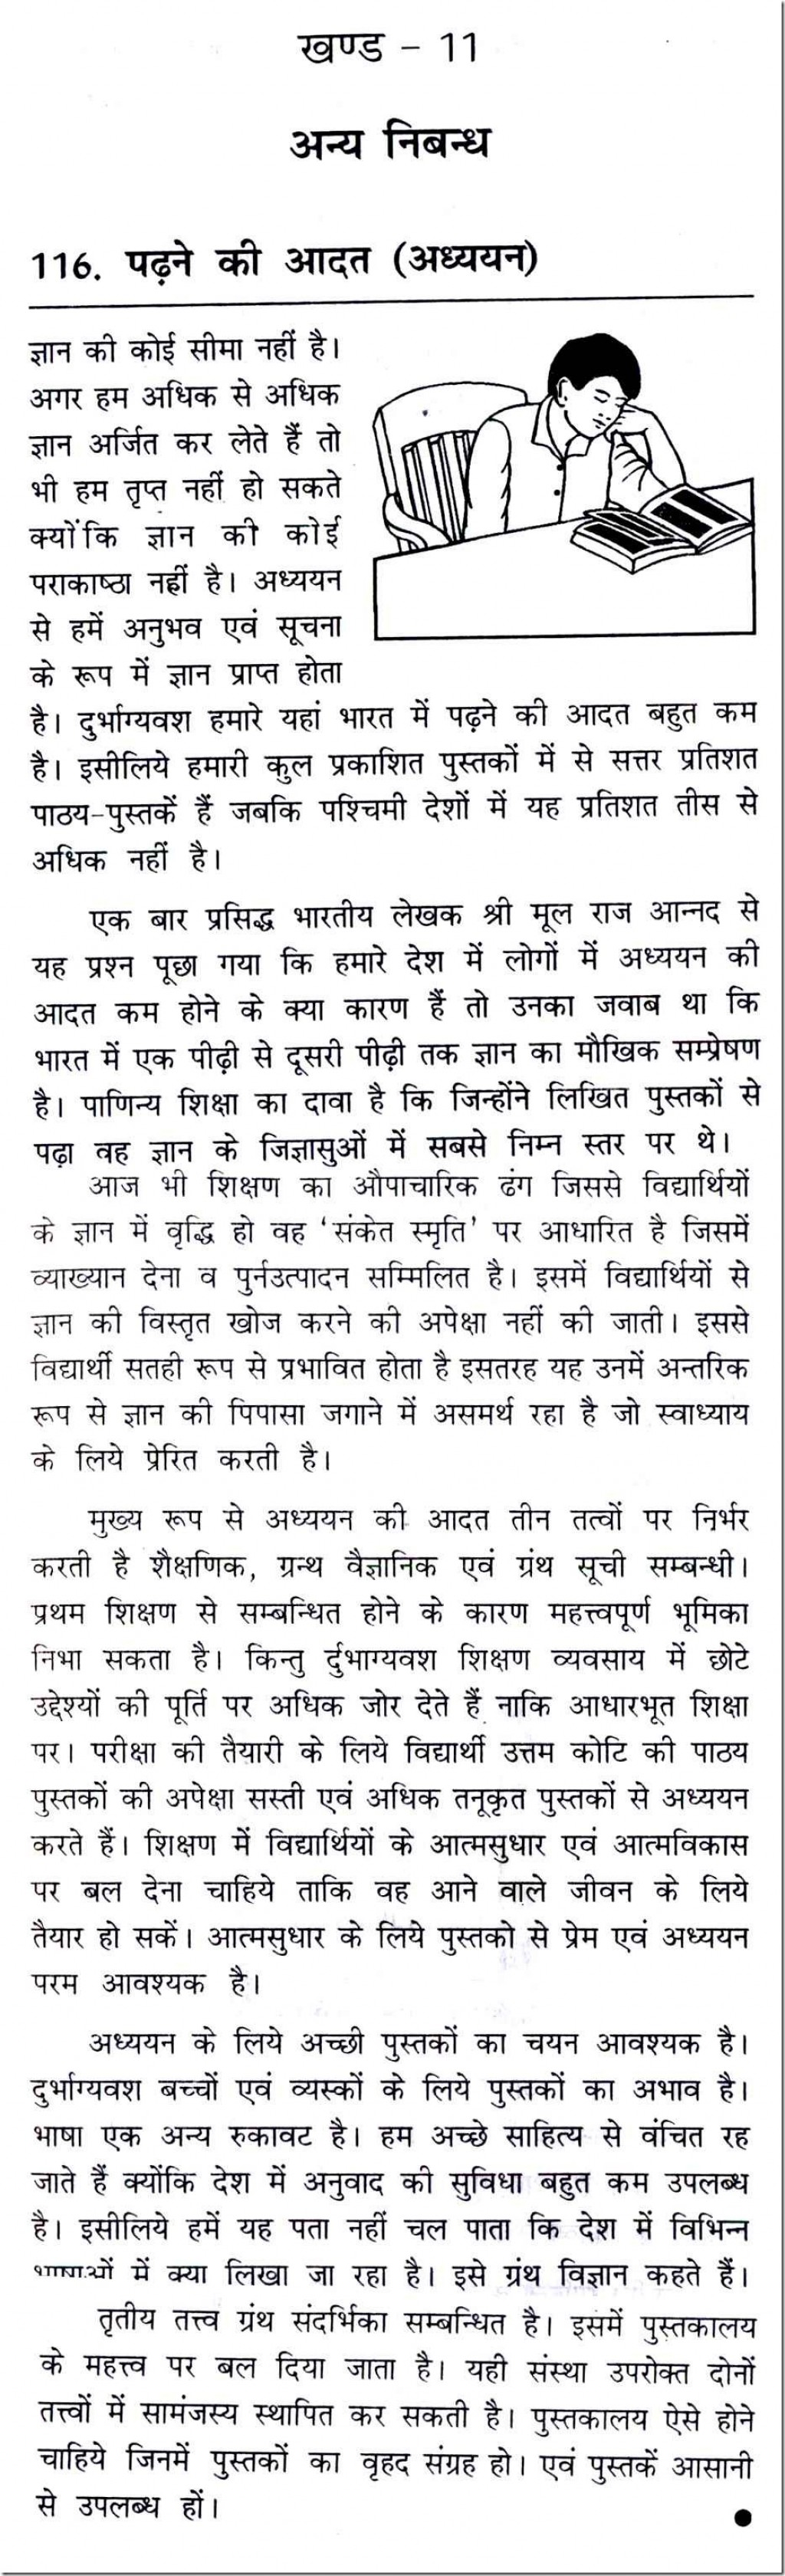 016 Good Habits Essay In Hindi 10118 Thumb Exceptional Healthy Eating Reading Is A Habit Large